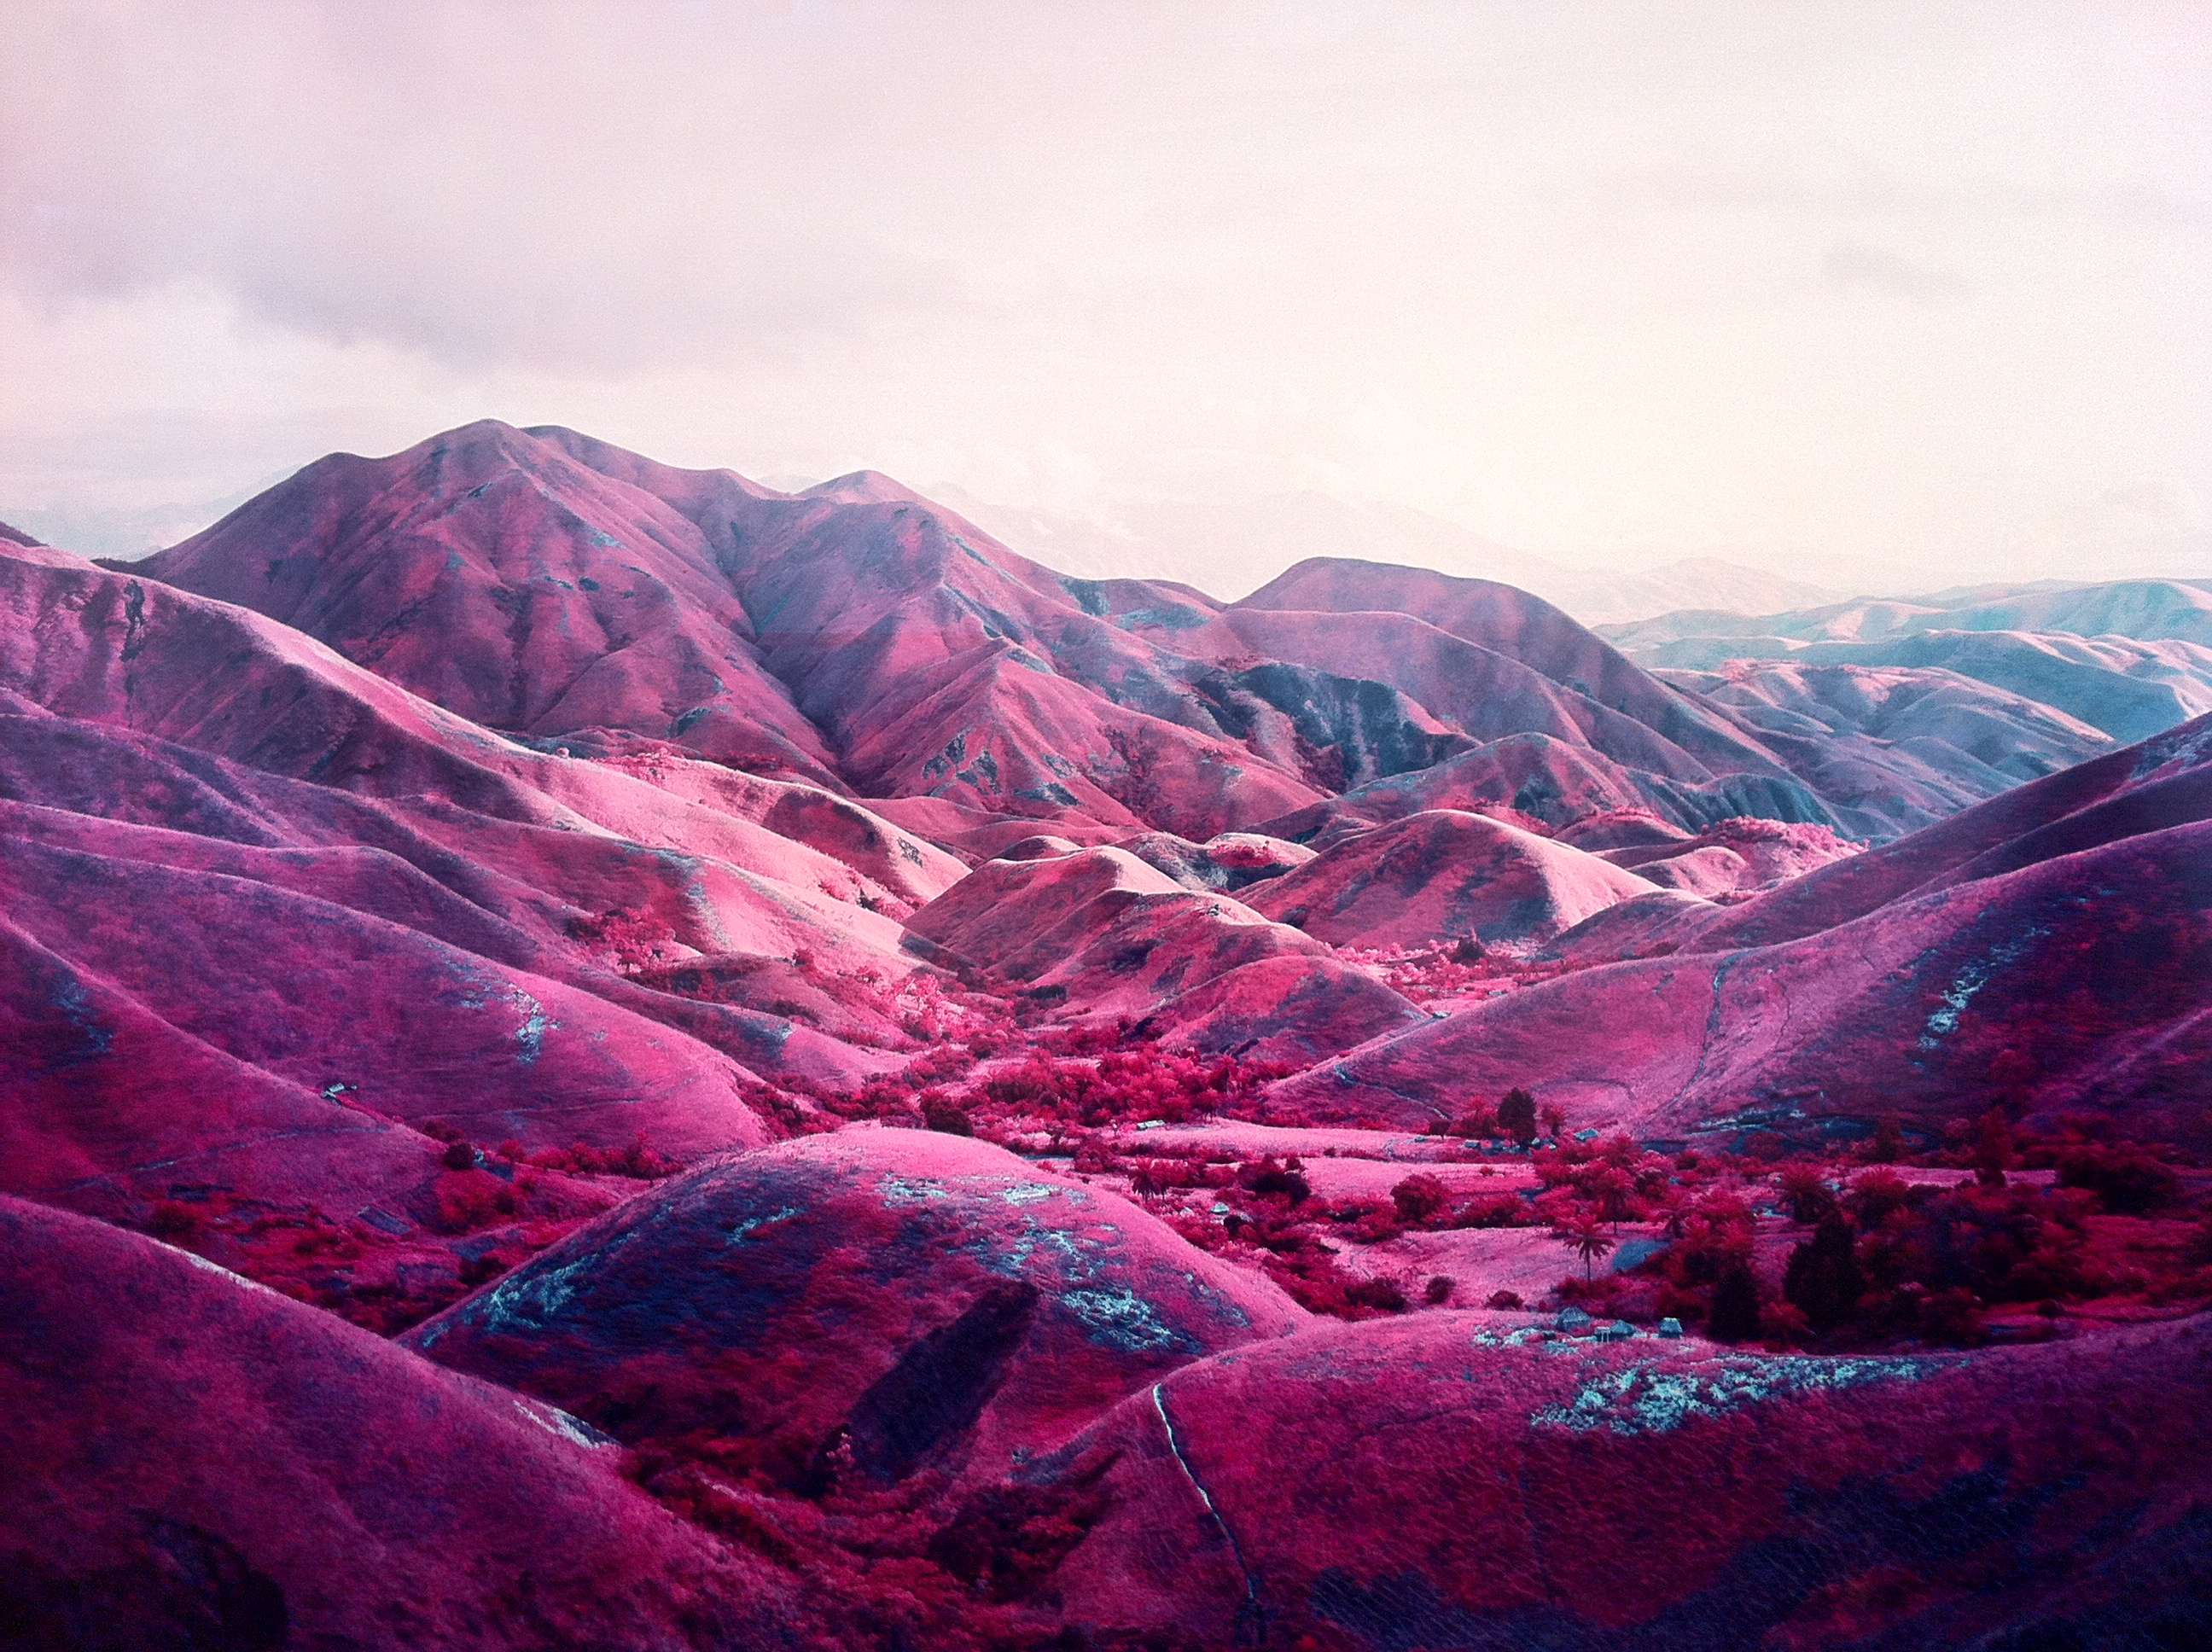 Pink Is the Colour of War Photographer Richard Mosse 2592x1936